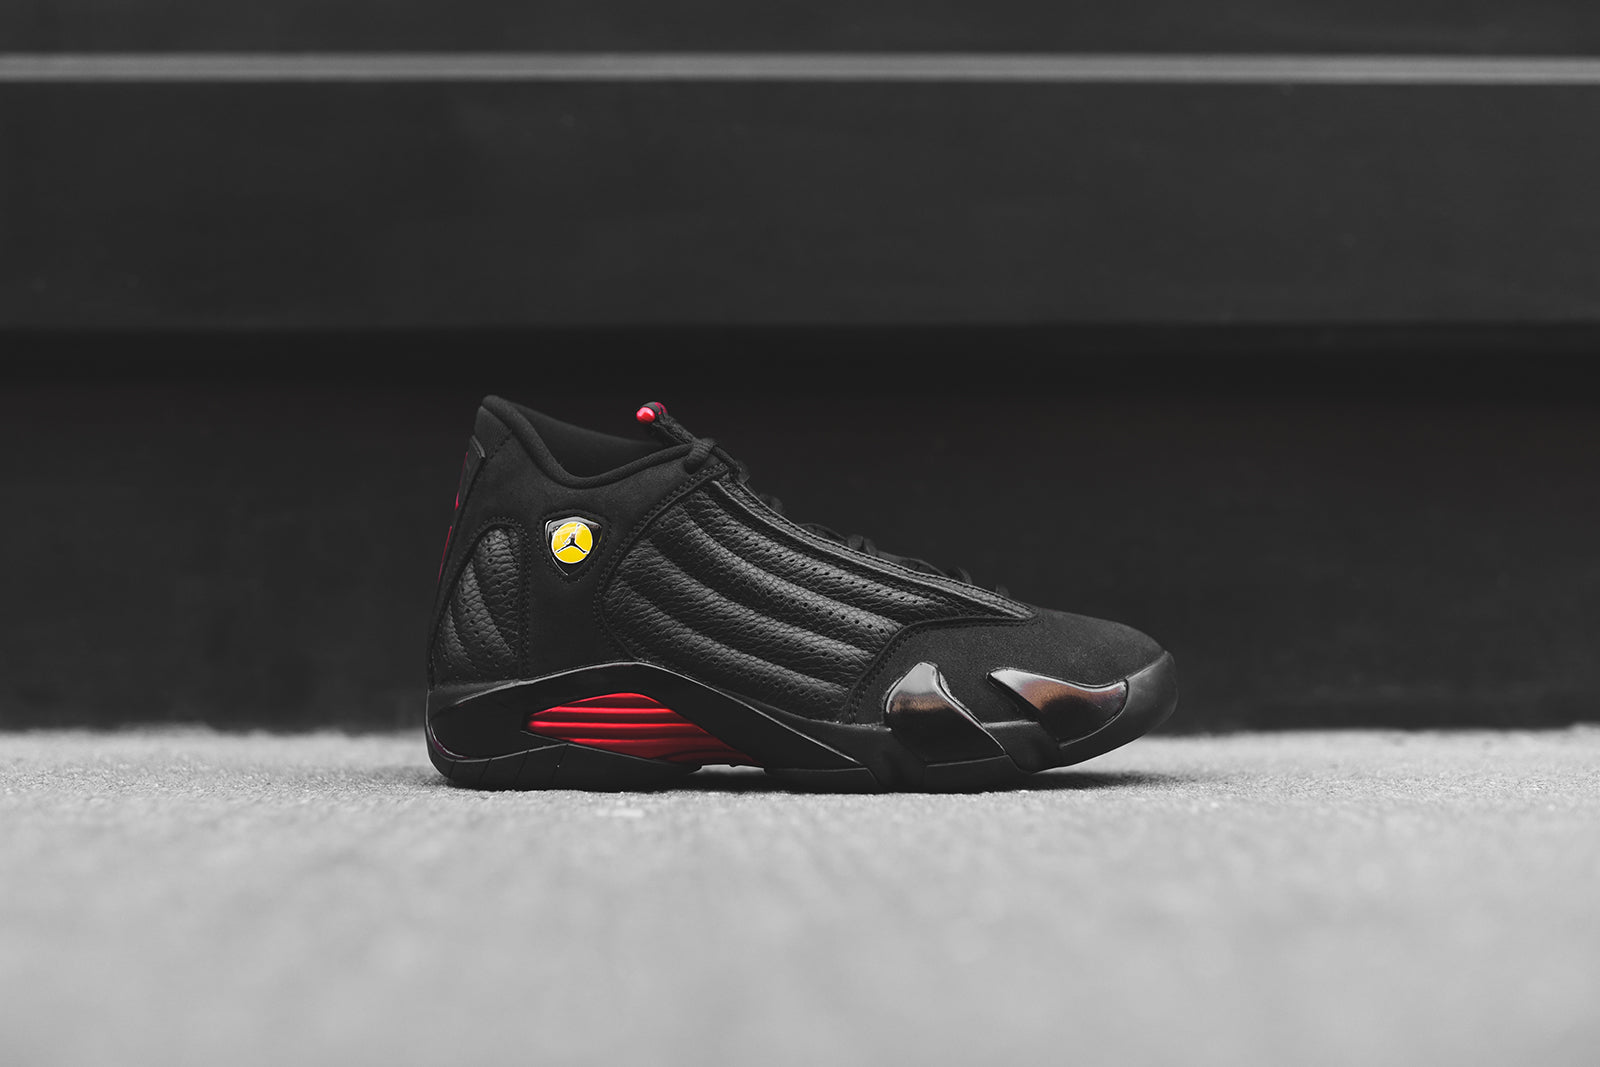 Nike Air Jordan 14 Retro - Black / Red